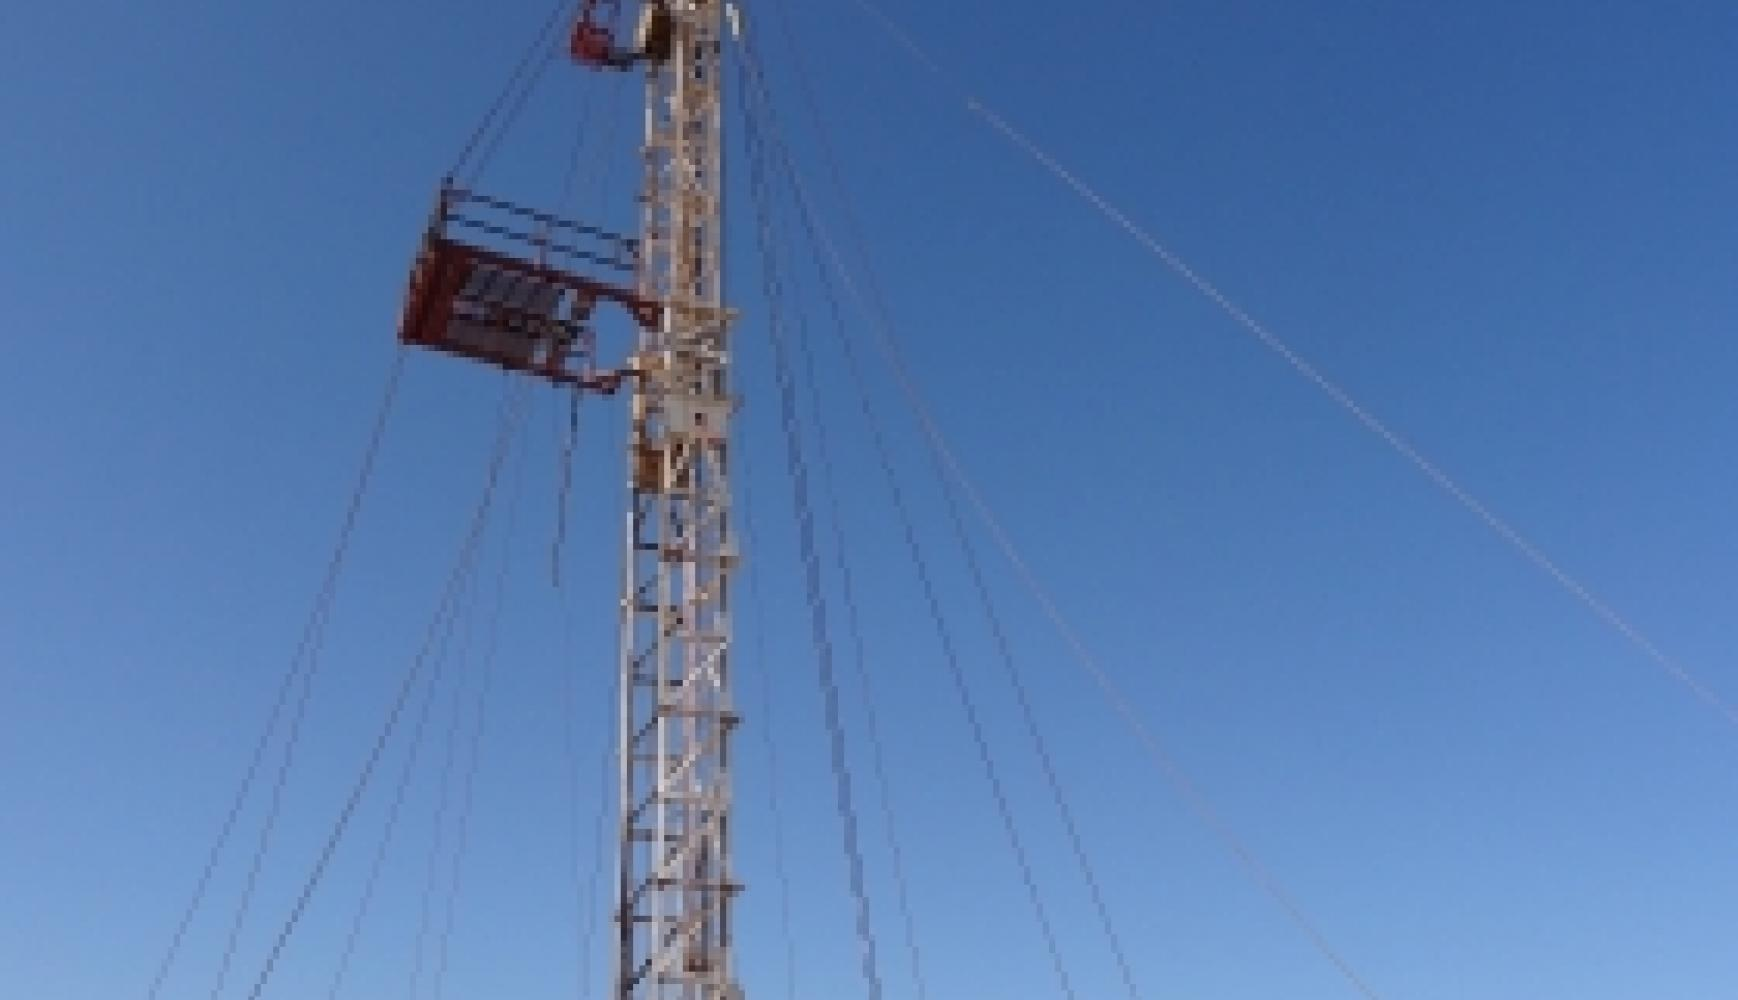 Well Servicing Rig Mast, tension instrumentation, tensiometer